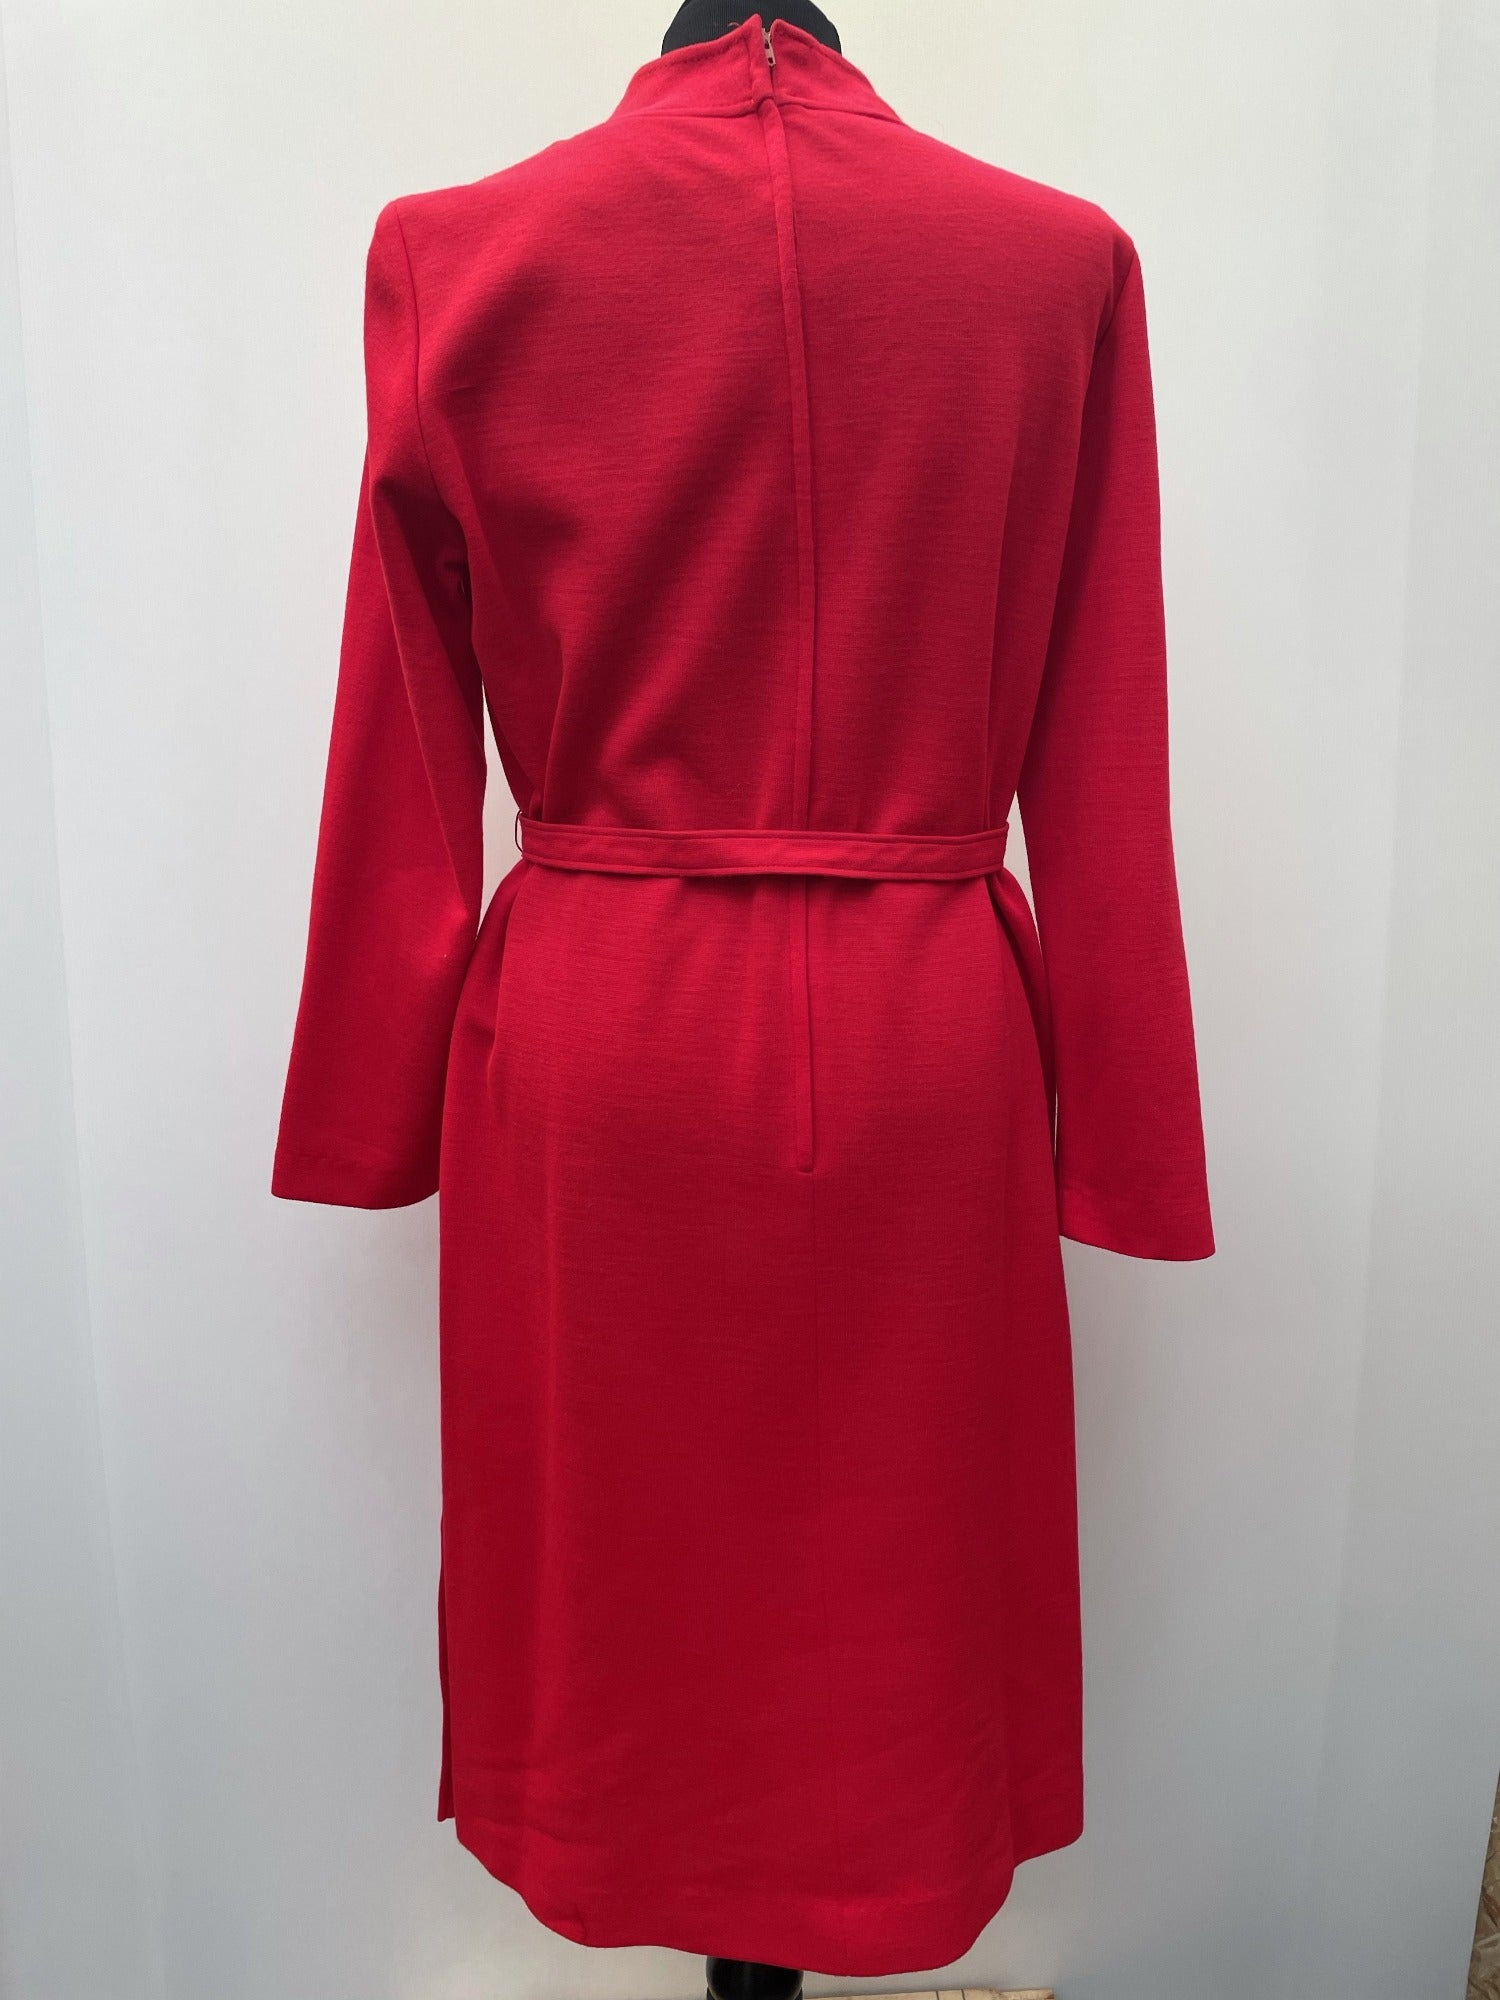 zip back  zip  womens  waist belt  vintage  Urban Village Vintage  urban village  retro  Red  polyester  MOD  maxi dress  long sleeve  long length  long dress  long  evening dress  evening  decorative buttons  crew neck  Berkertex  Belted waist  belted dress  belted  belt  acrilyc  60s  1960s  16  14/16  14